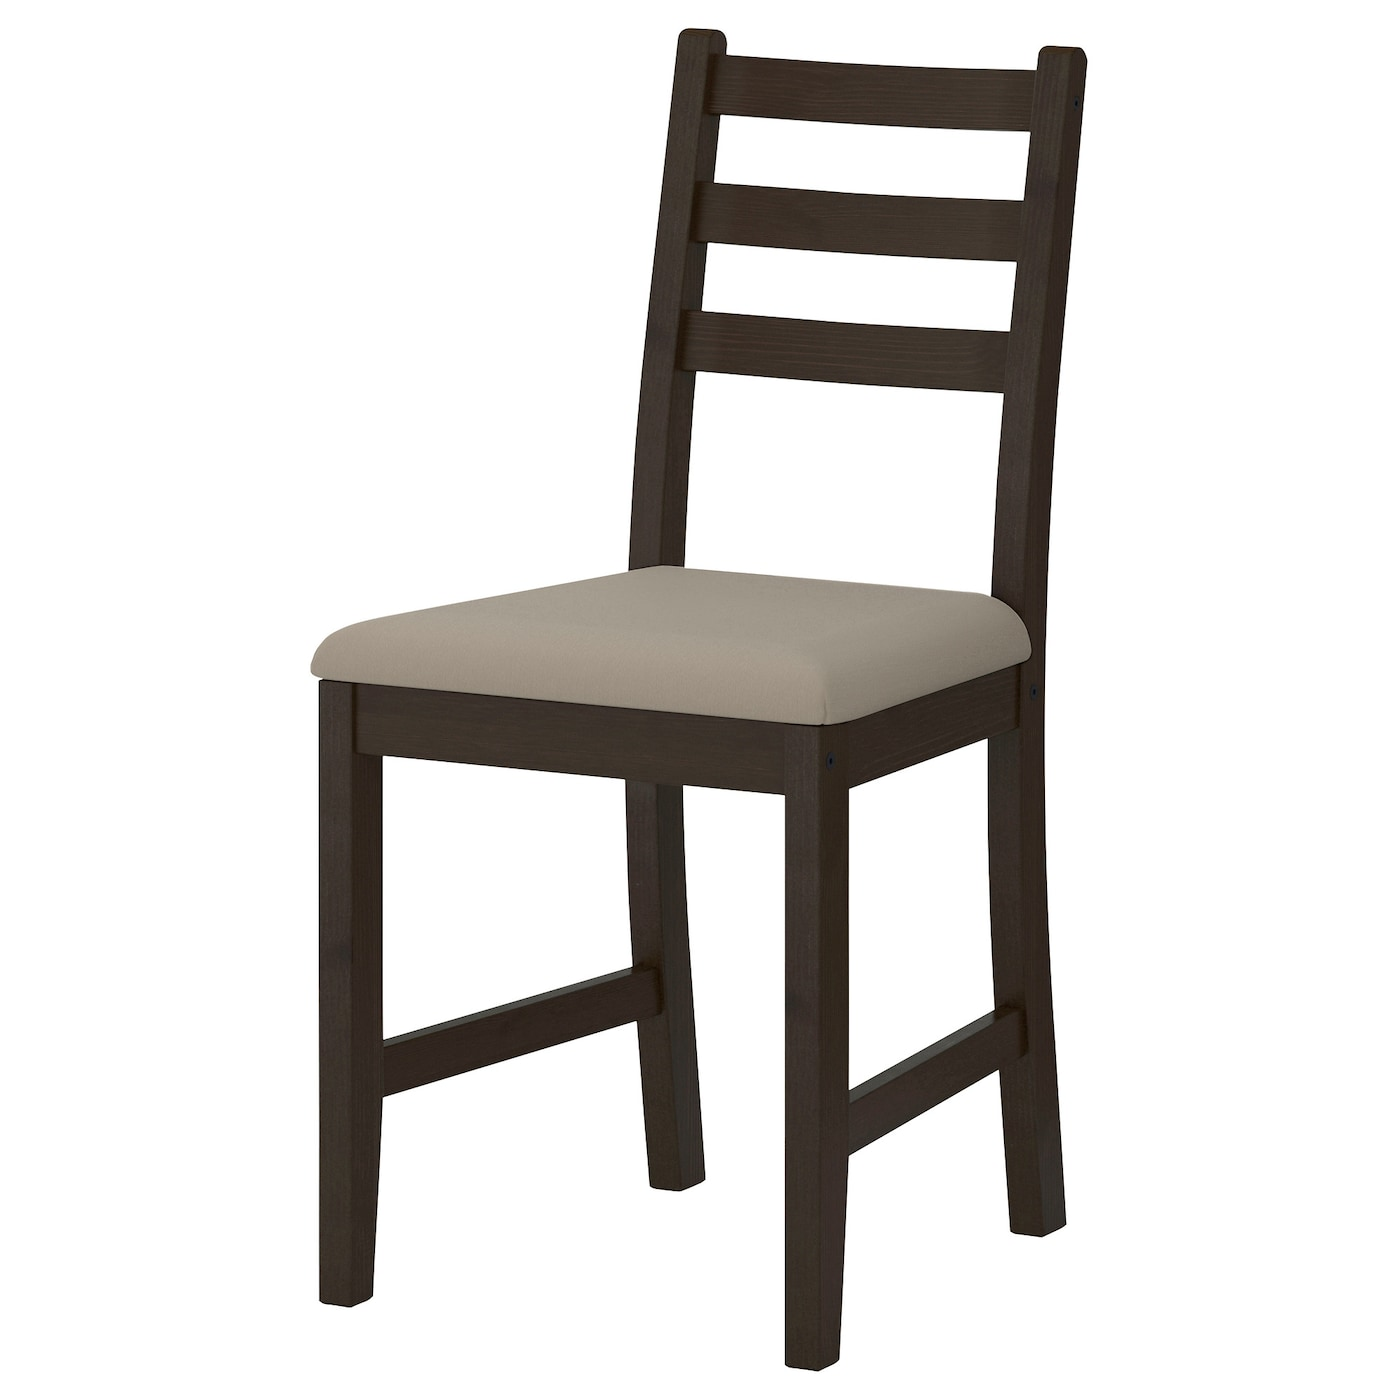 Lerhamn chair black brown ramna beige ikea - Sillas de comedor ...